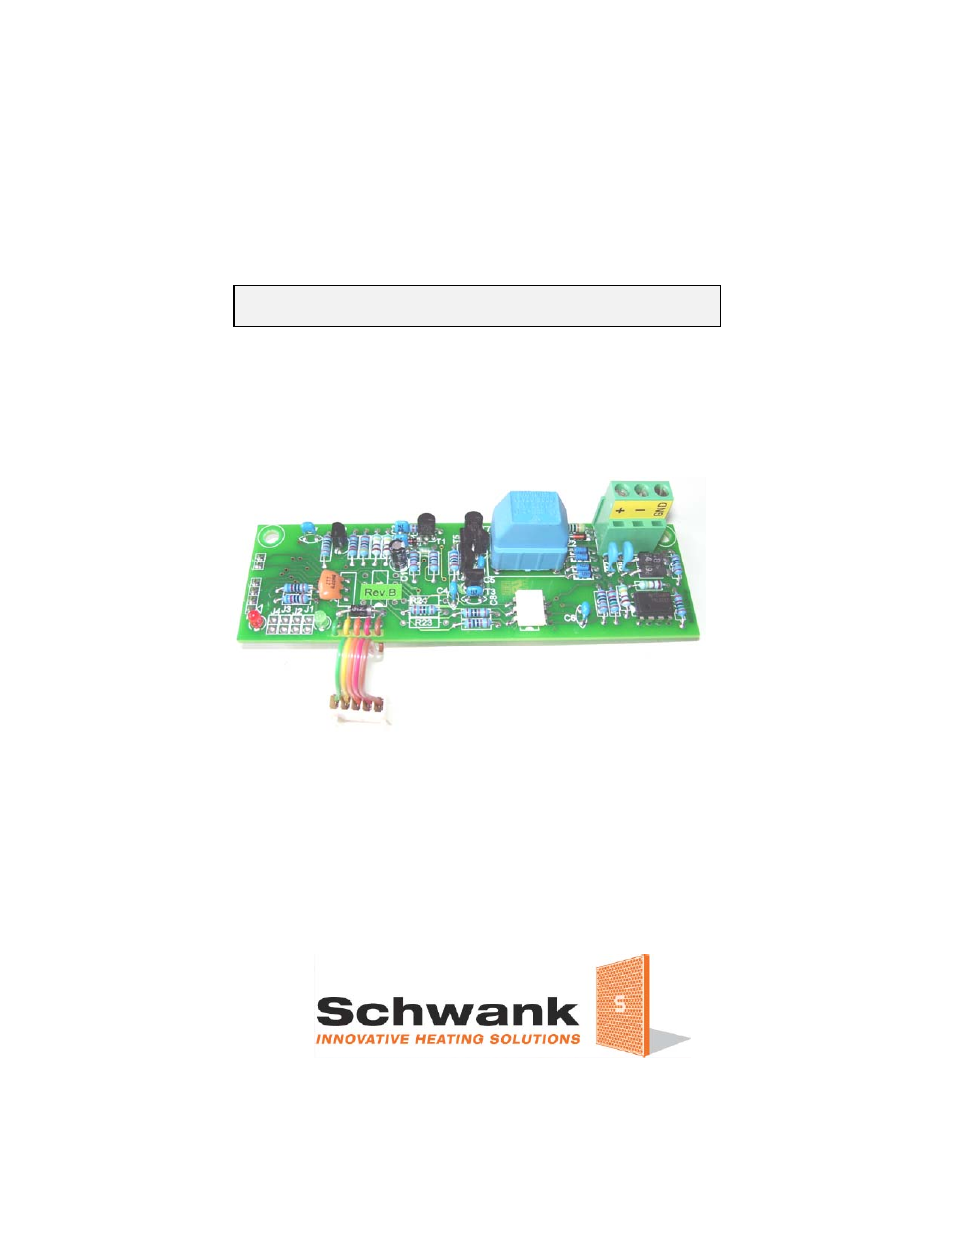 schwank thermocontrol plus series cm 485 user manual 23. Black Bedroom Furniture Sets. Home Design Ideas